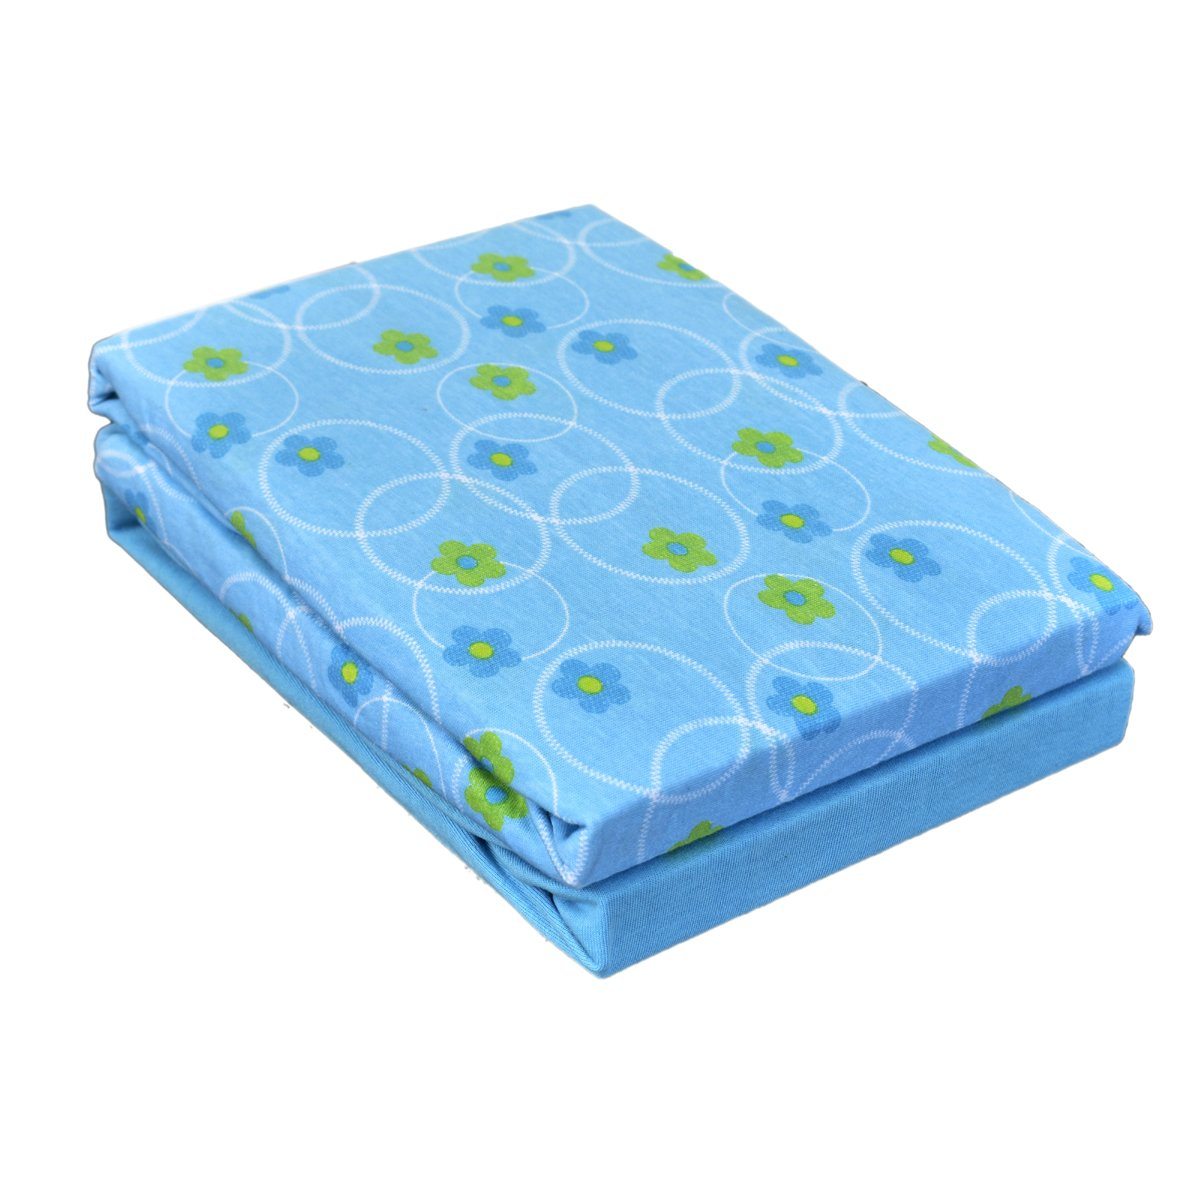 Dudu N Girlie Cotton Chicco Next2Me Crib Fitted Sheets, Flower Blue, 2-Piece Dudu N Girlie Limited 5000424212015